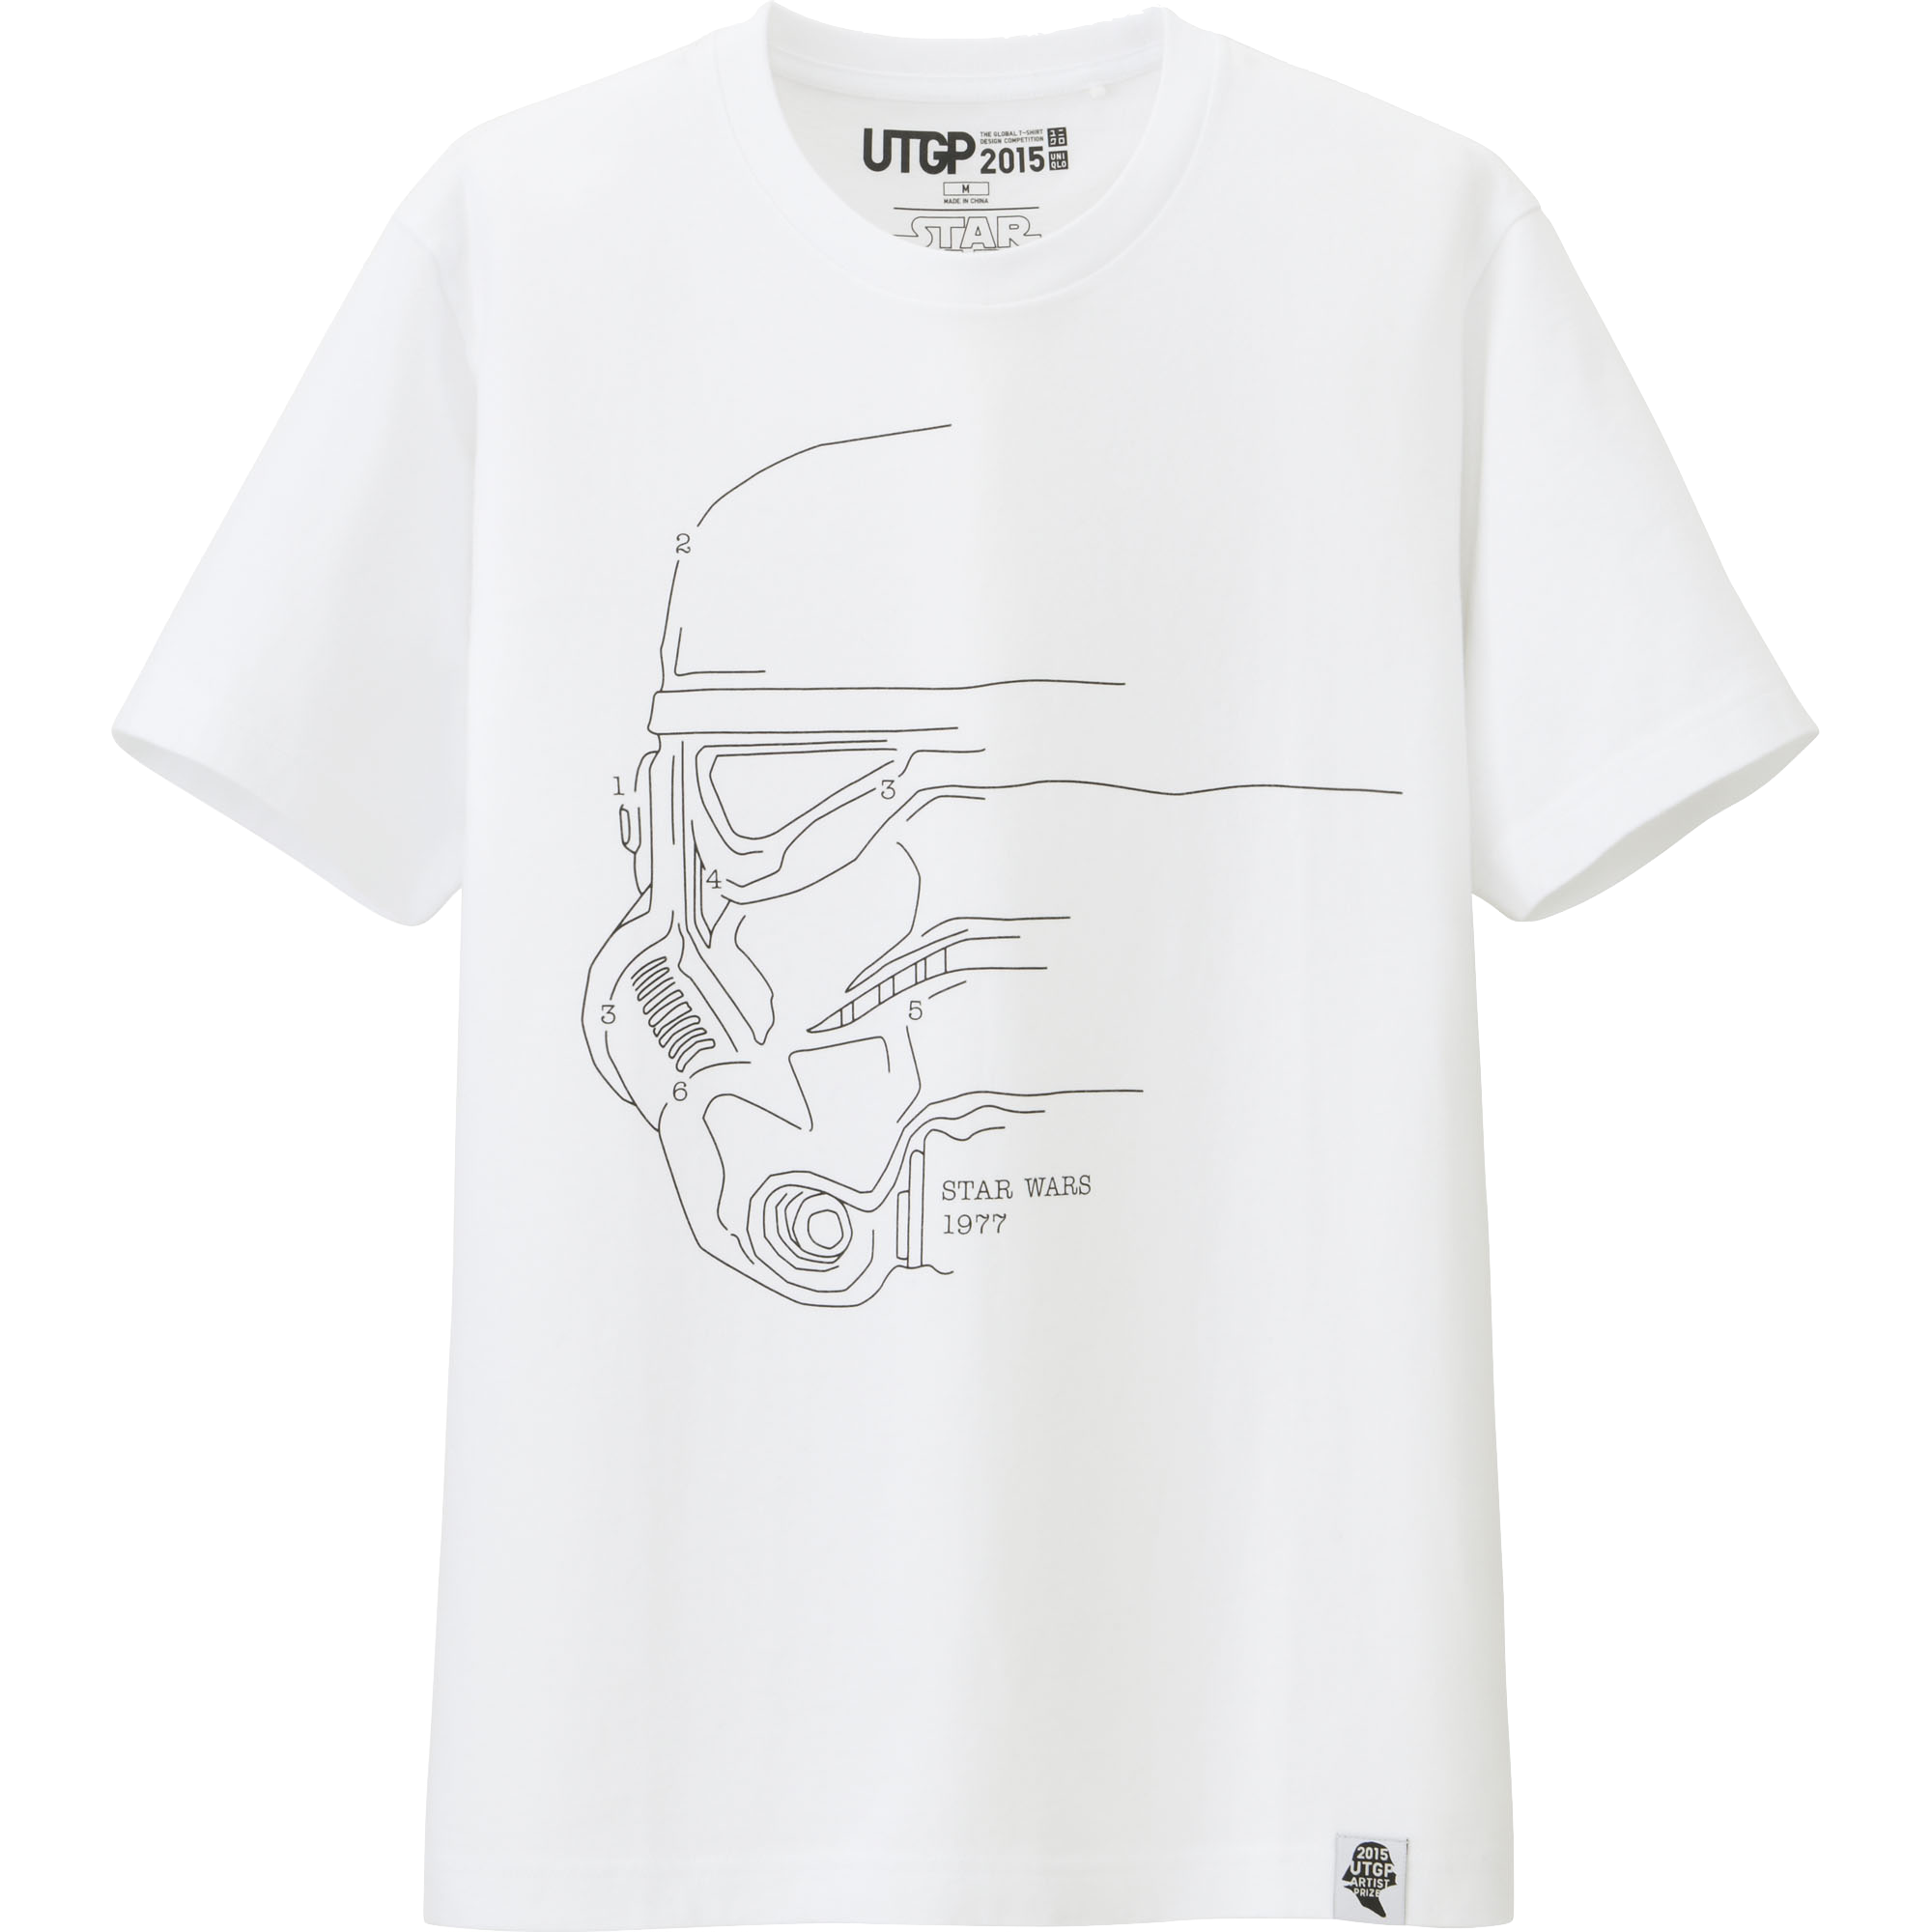 UNIQLO Star Wars Graphic Tees 390 - 590 PHP